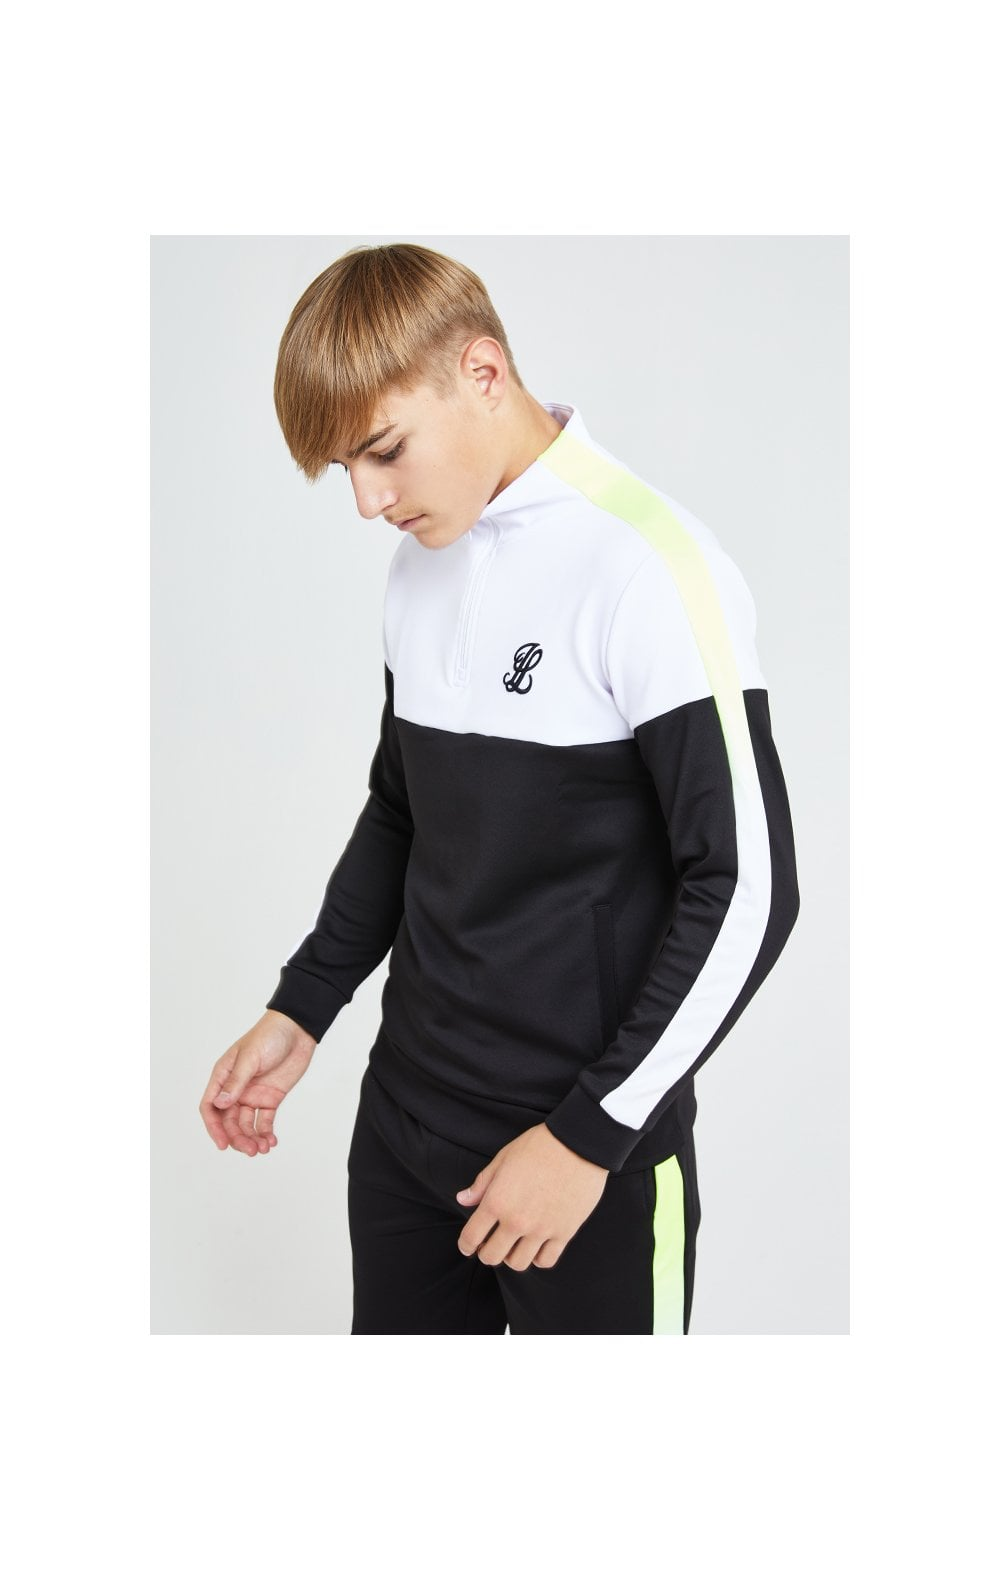 Load image into Gallery viewer, Illusive London Fade Funnel Neck Hoodie - Black,White & Neon Yellow (4)